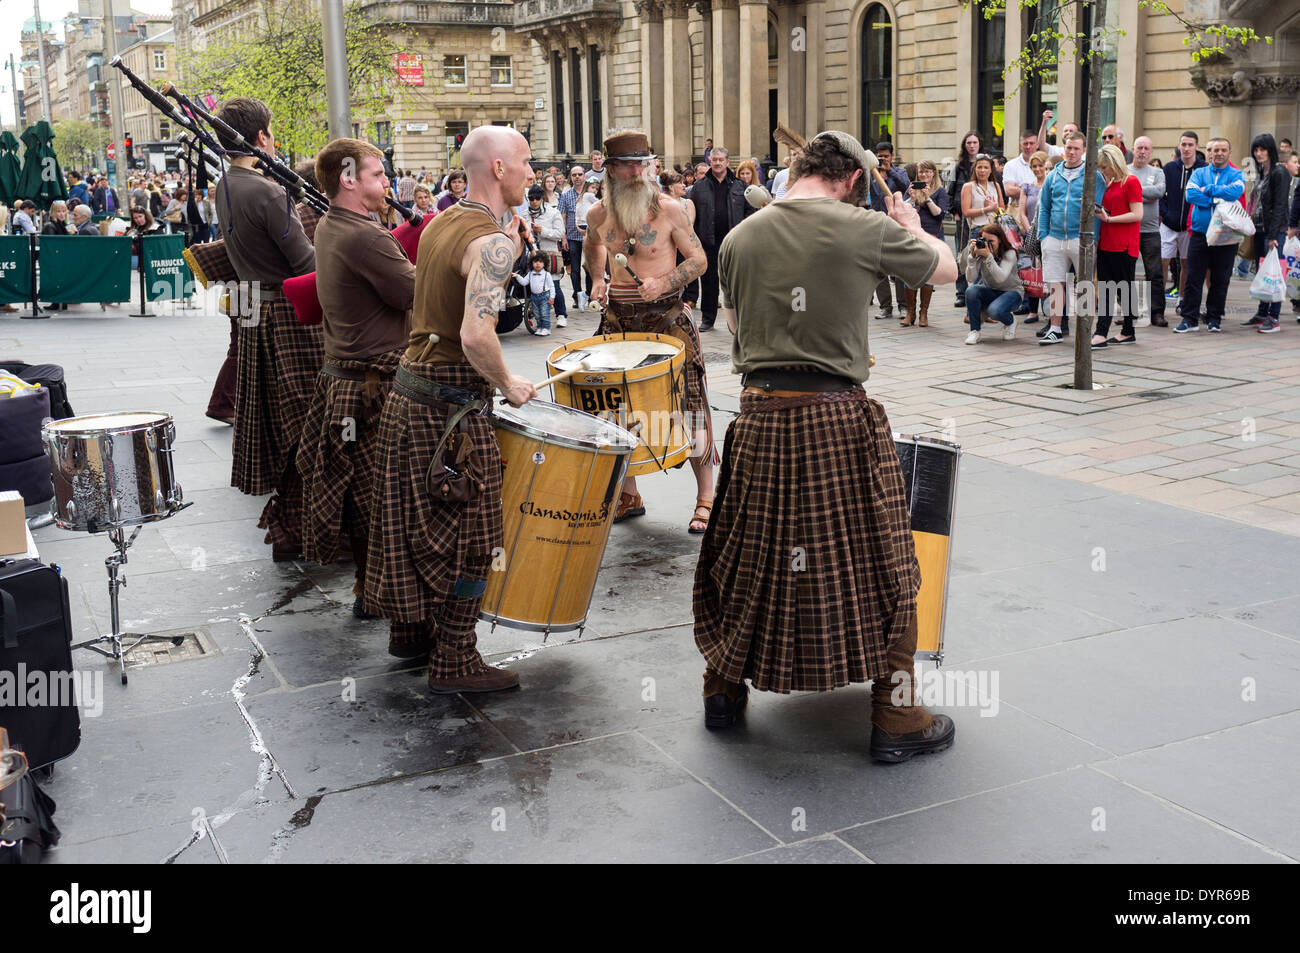 Scottish group Clanadonia busking in Buchanan Street, Glasgow, Scotland, UK - Stock Image